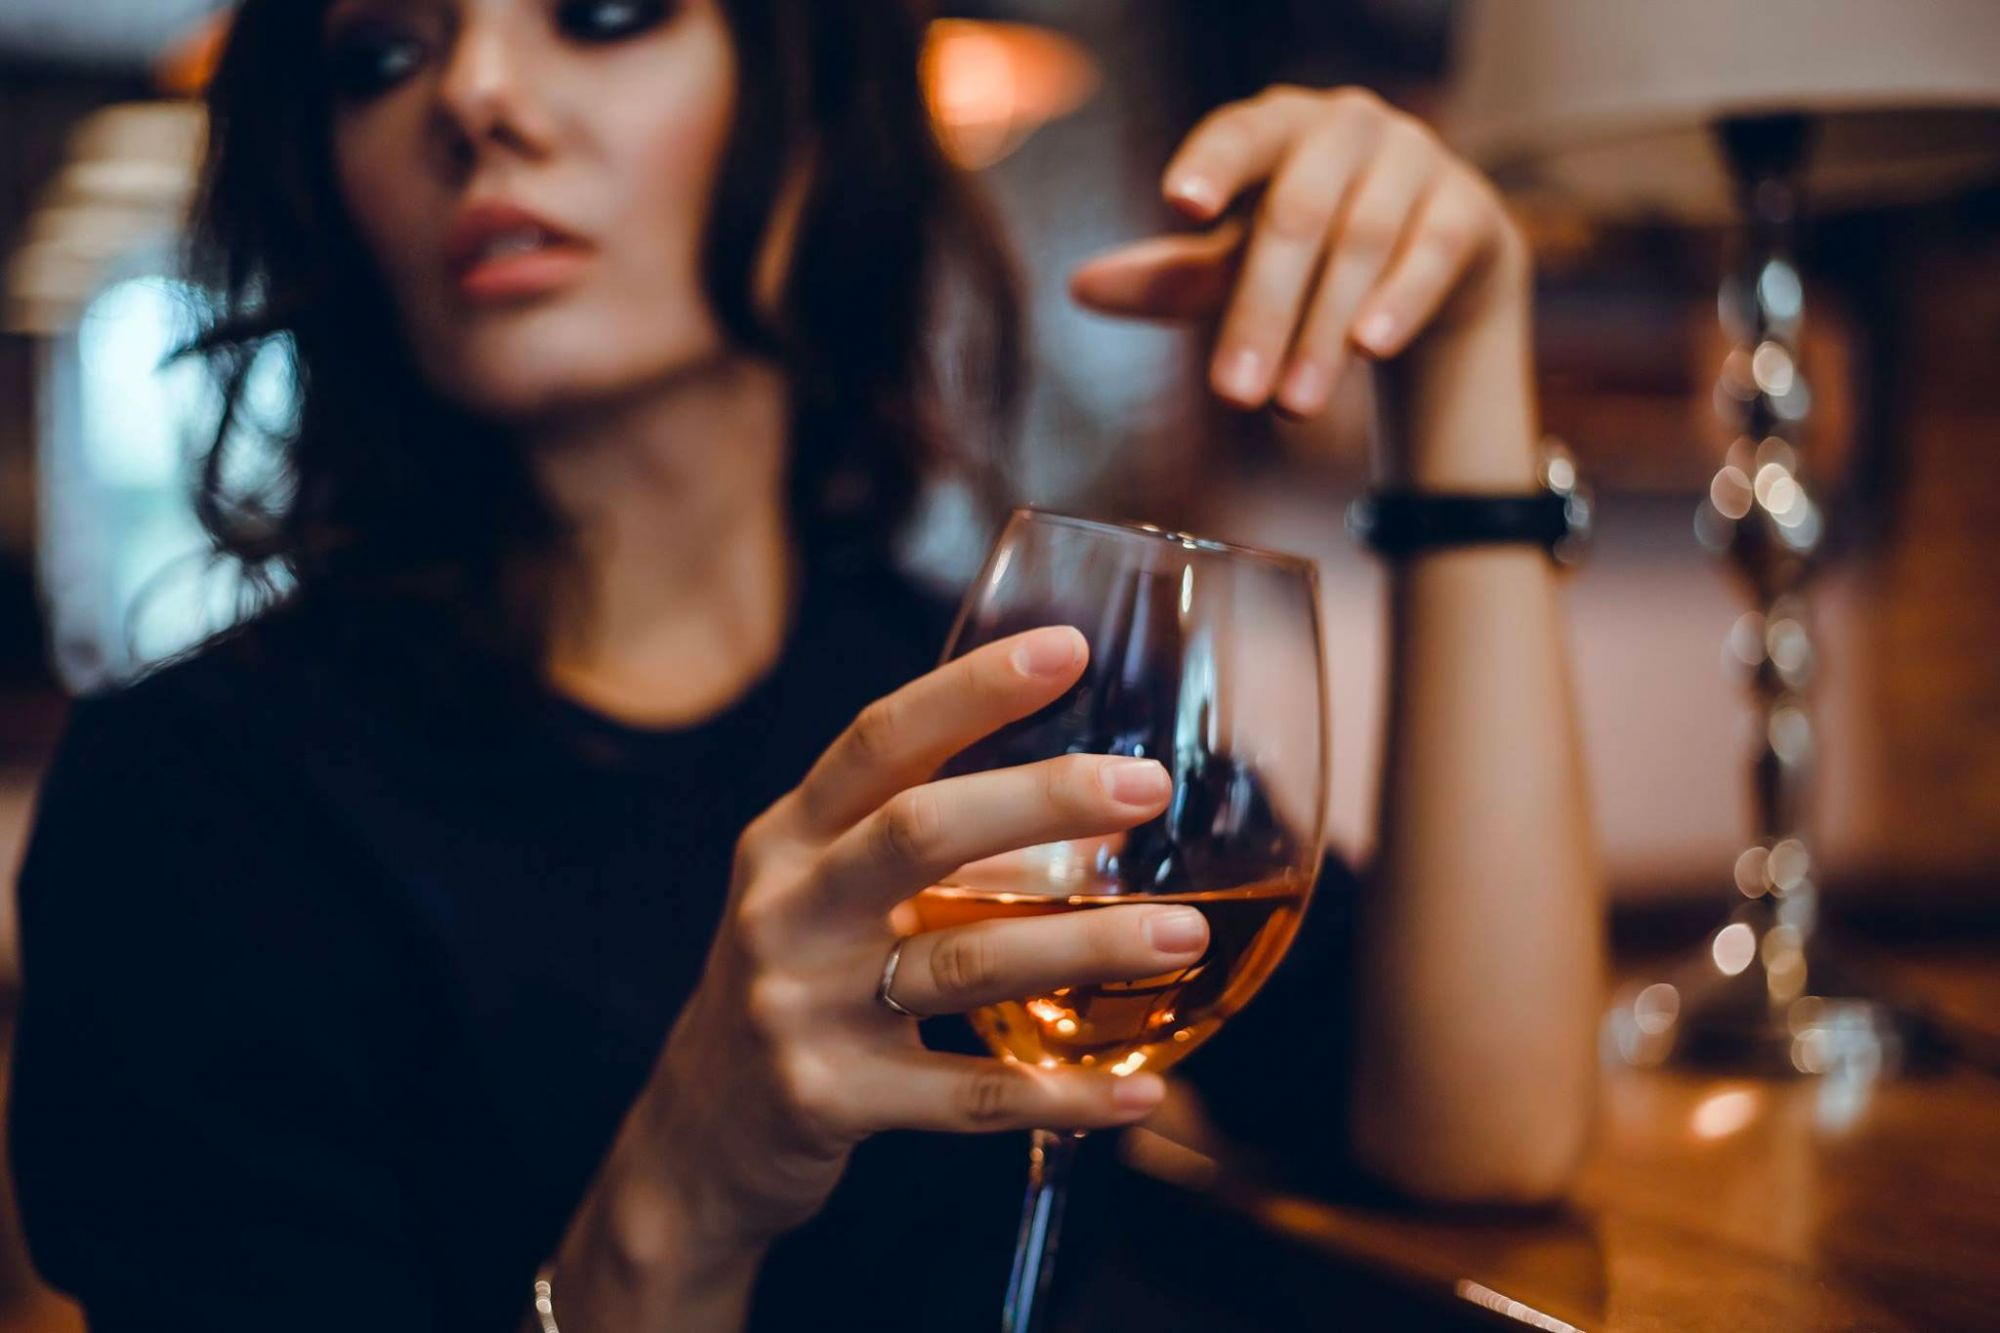 House of Saka Aims to Redefine Luxury With Cannabis-Infused Wine